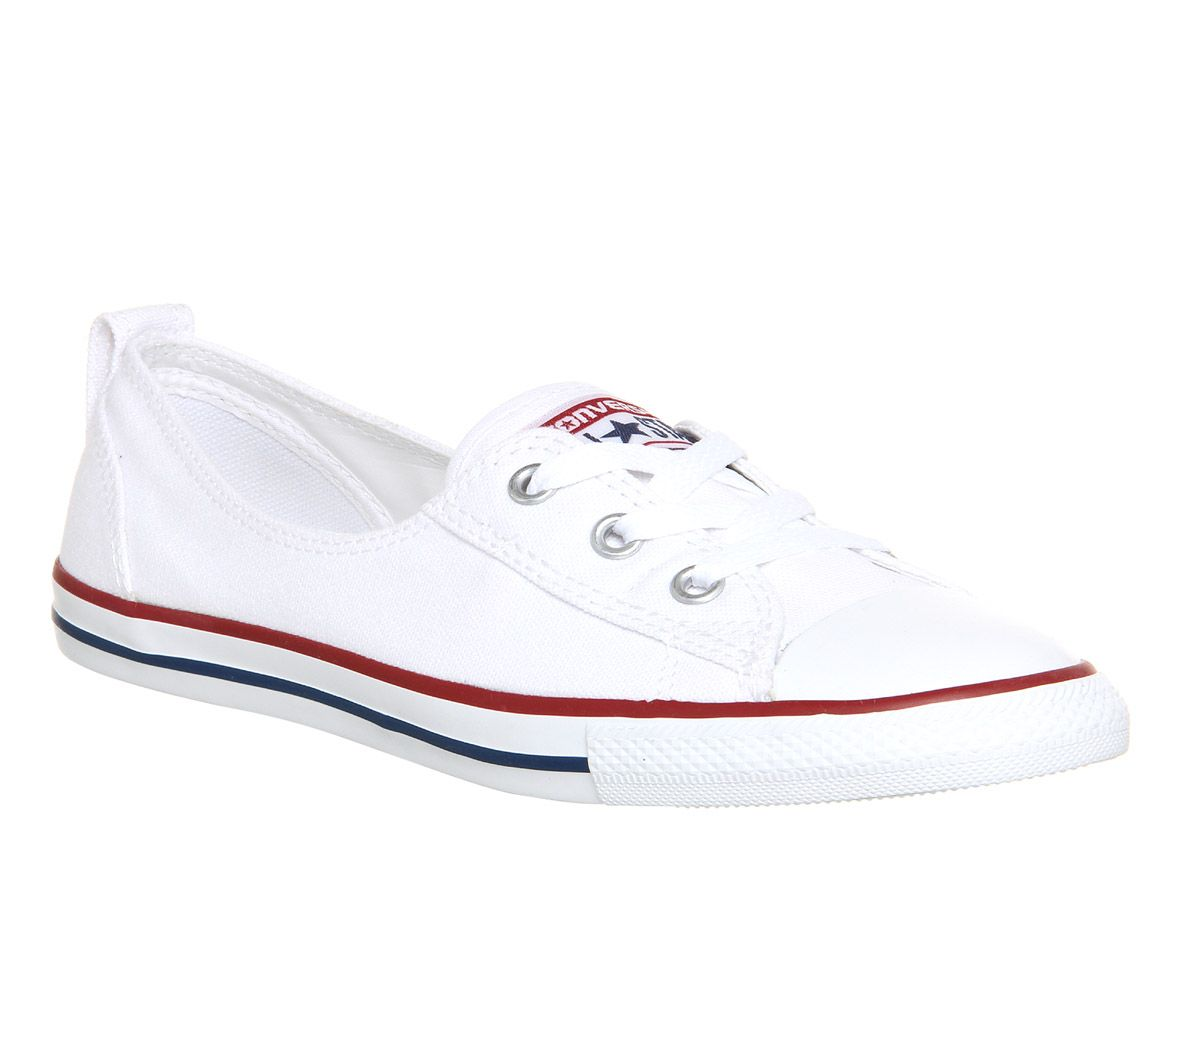 Converse Ctas Ballet Lace Optical White Exclusive - Hers trainers White  Lace Shoes 592fef81467b